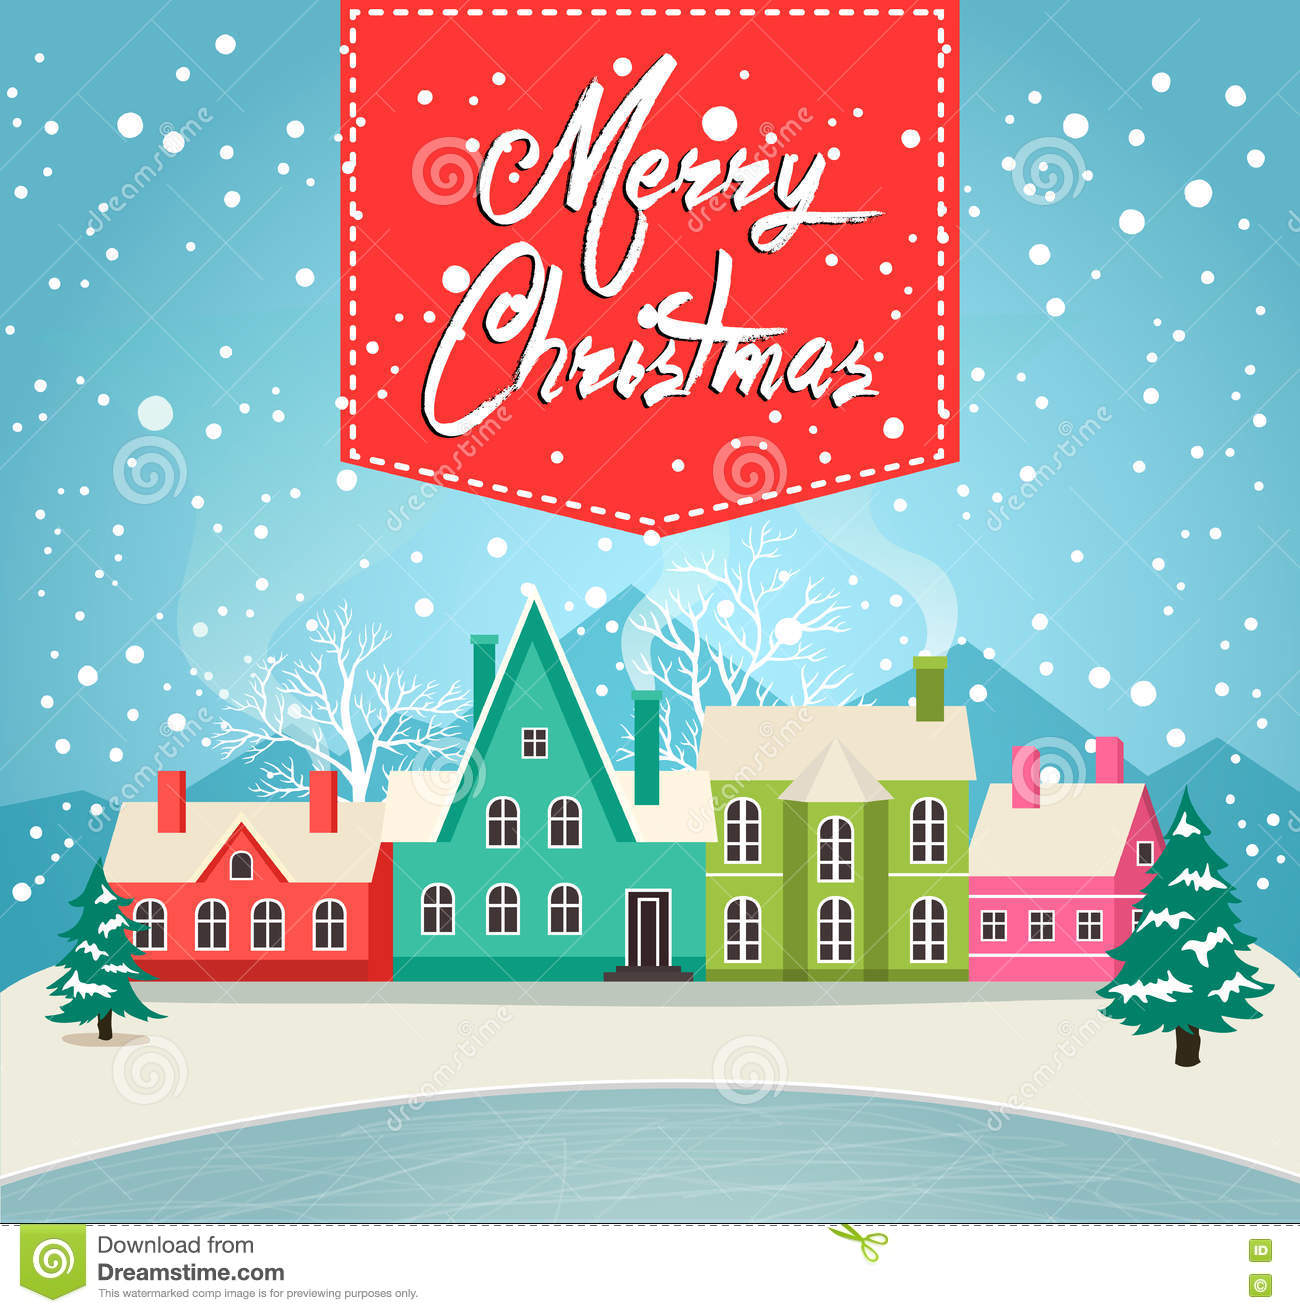 Marry Christmas Greeting Card With Village Stock Vector